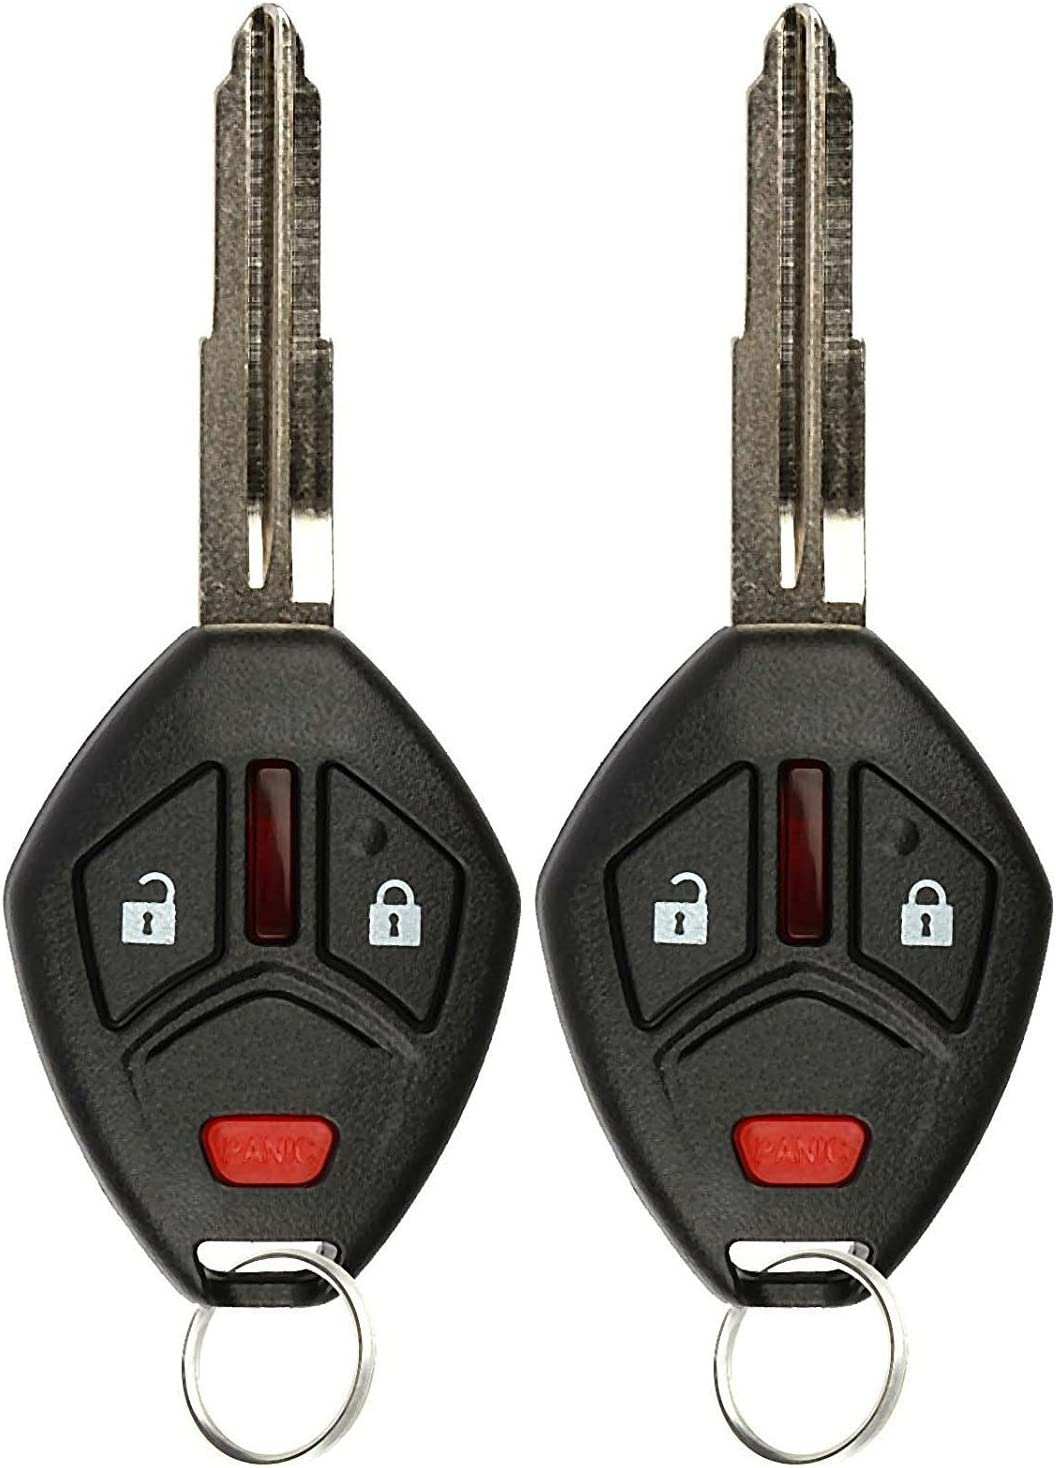 KeylessOption Keyless Entry Remote Uncut Notch Car Ignition Chip Key Fob for OUCG8D-620M-A